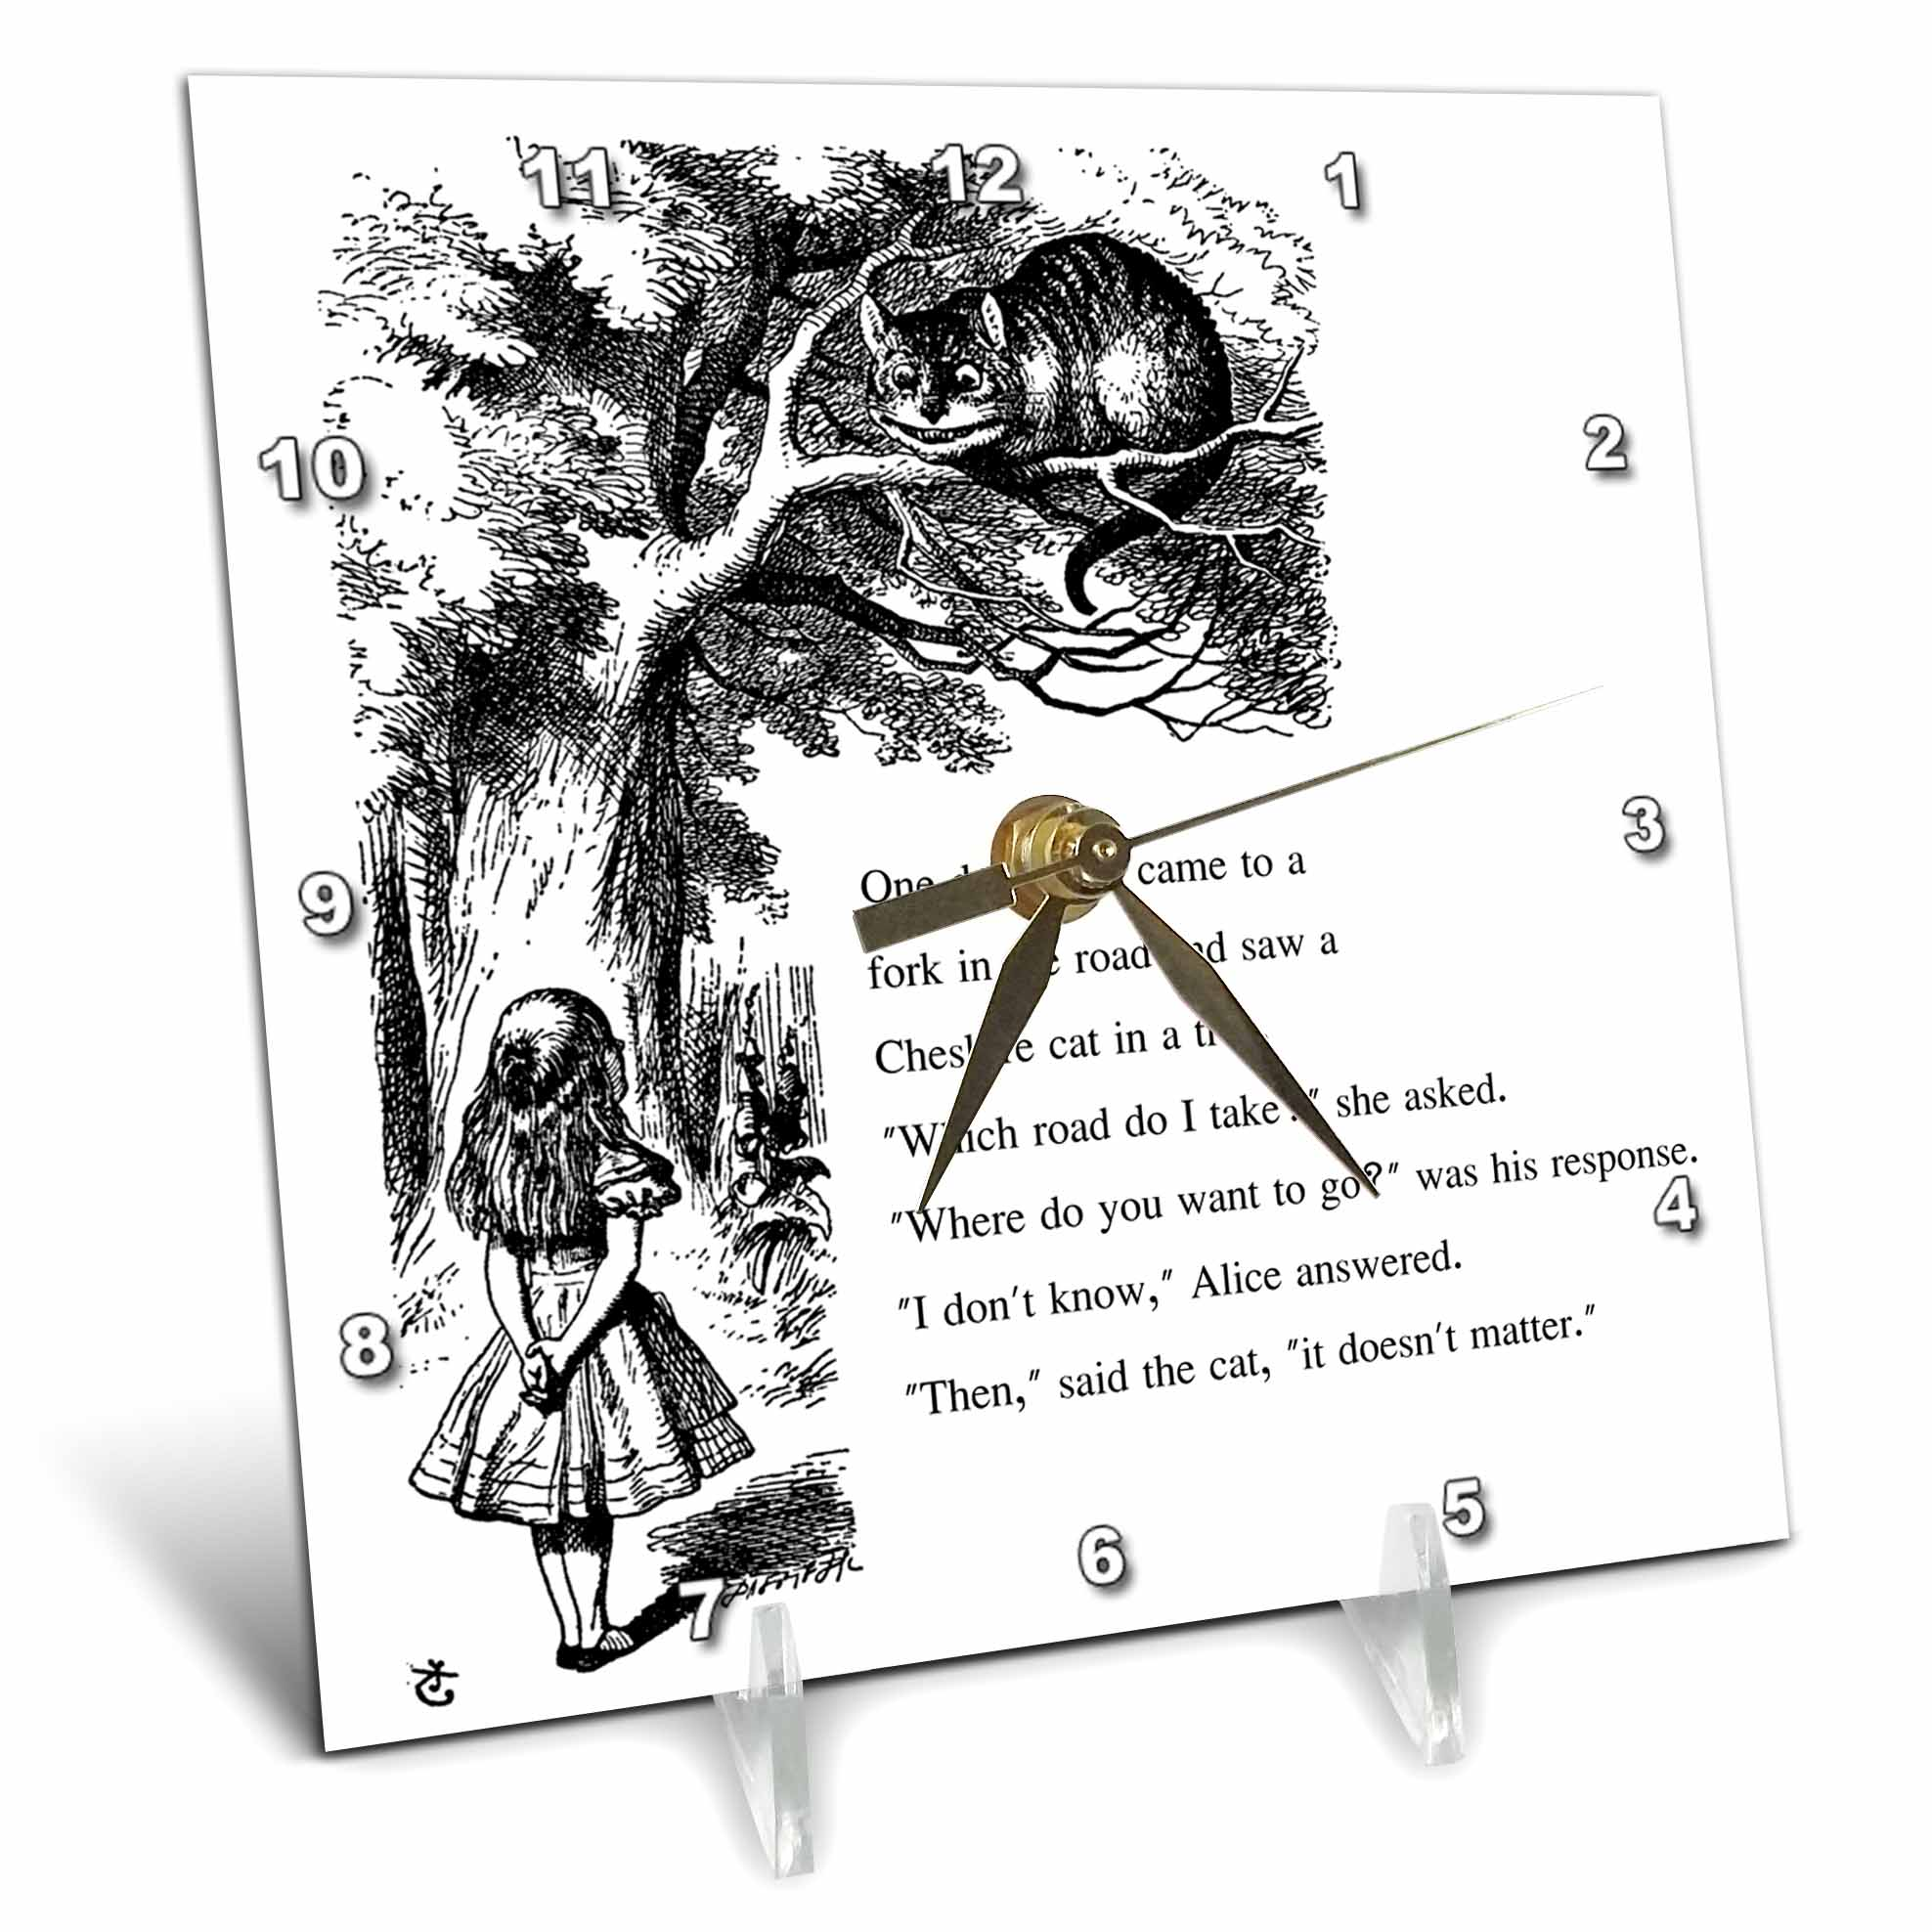 3dRose Which road do I take Cheshire cat Alice in Wonderland John Tenniel, Desk Clock, 6 by 6-inch by 3dRose